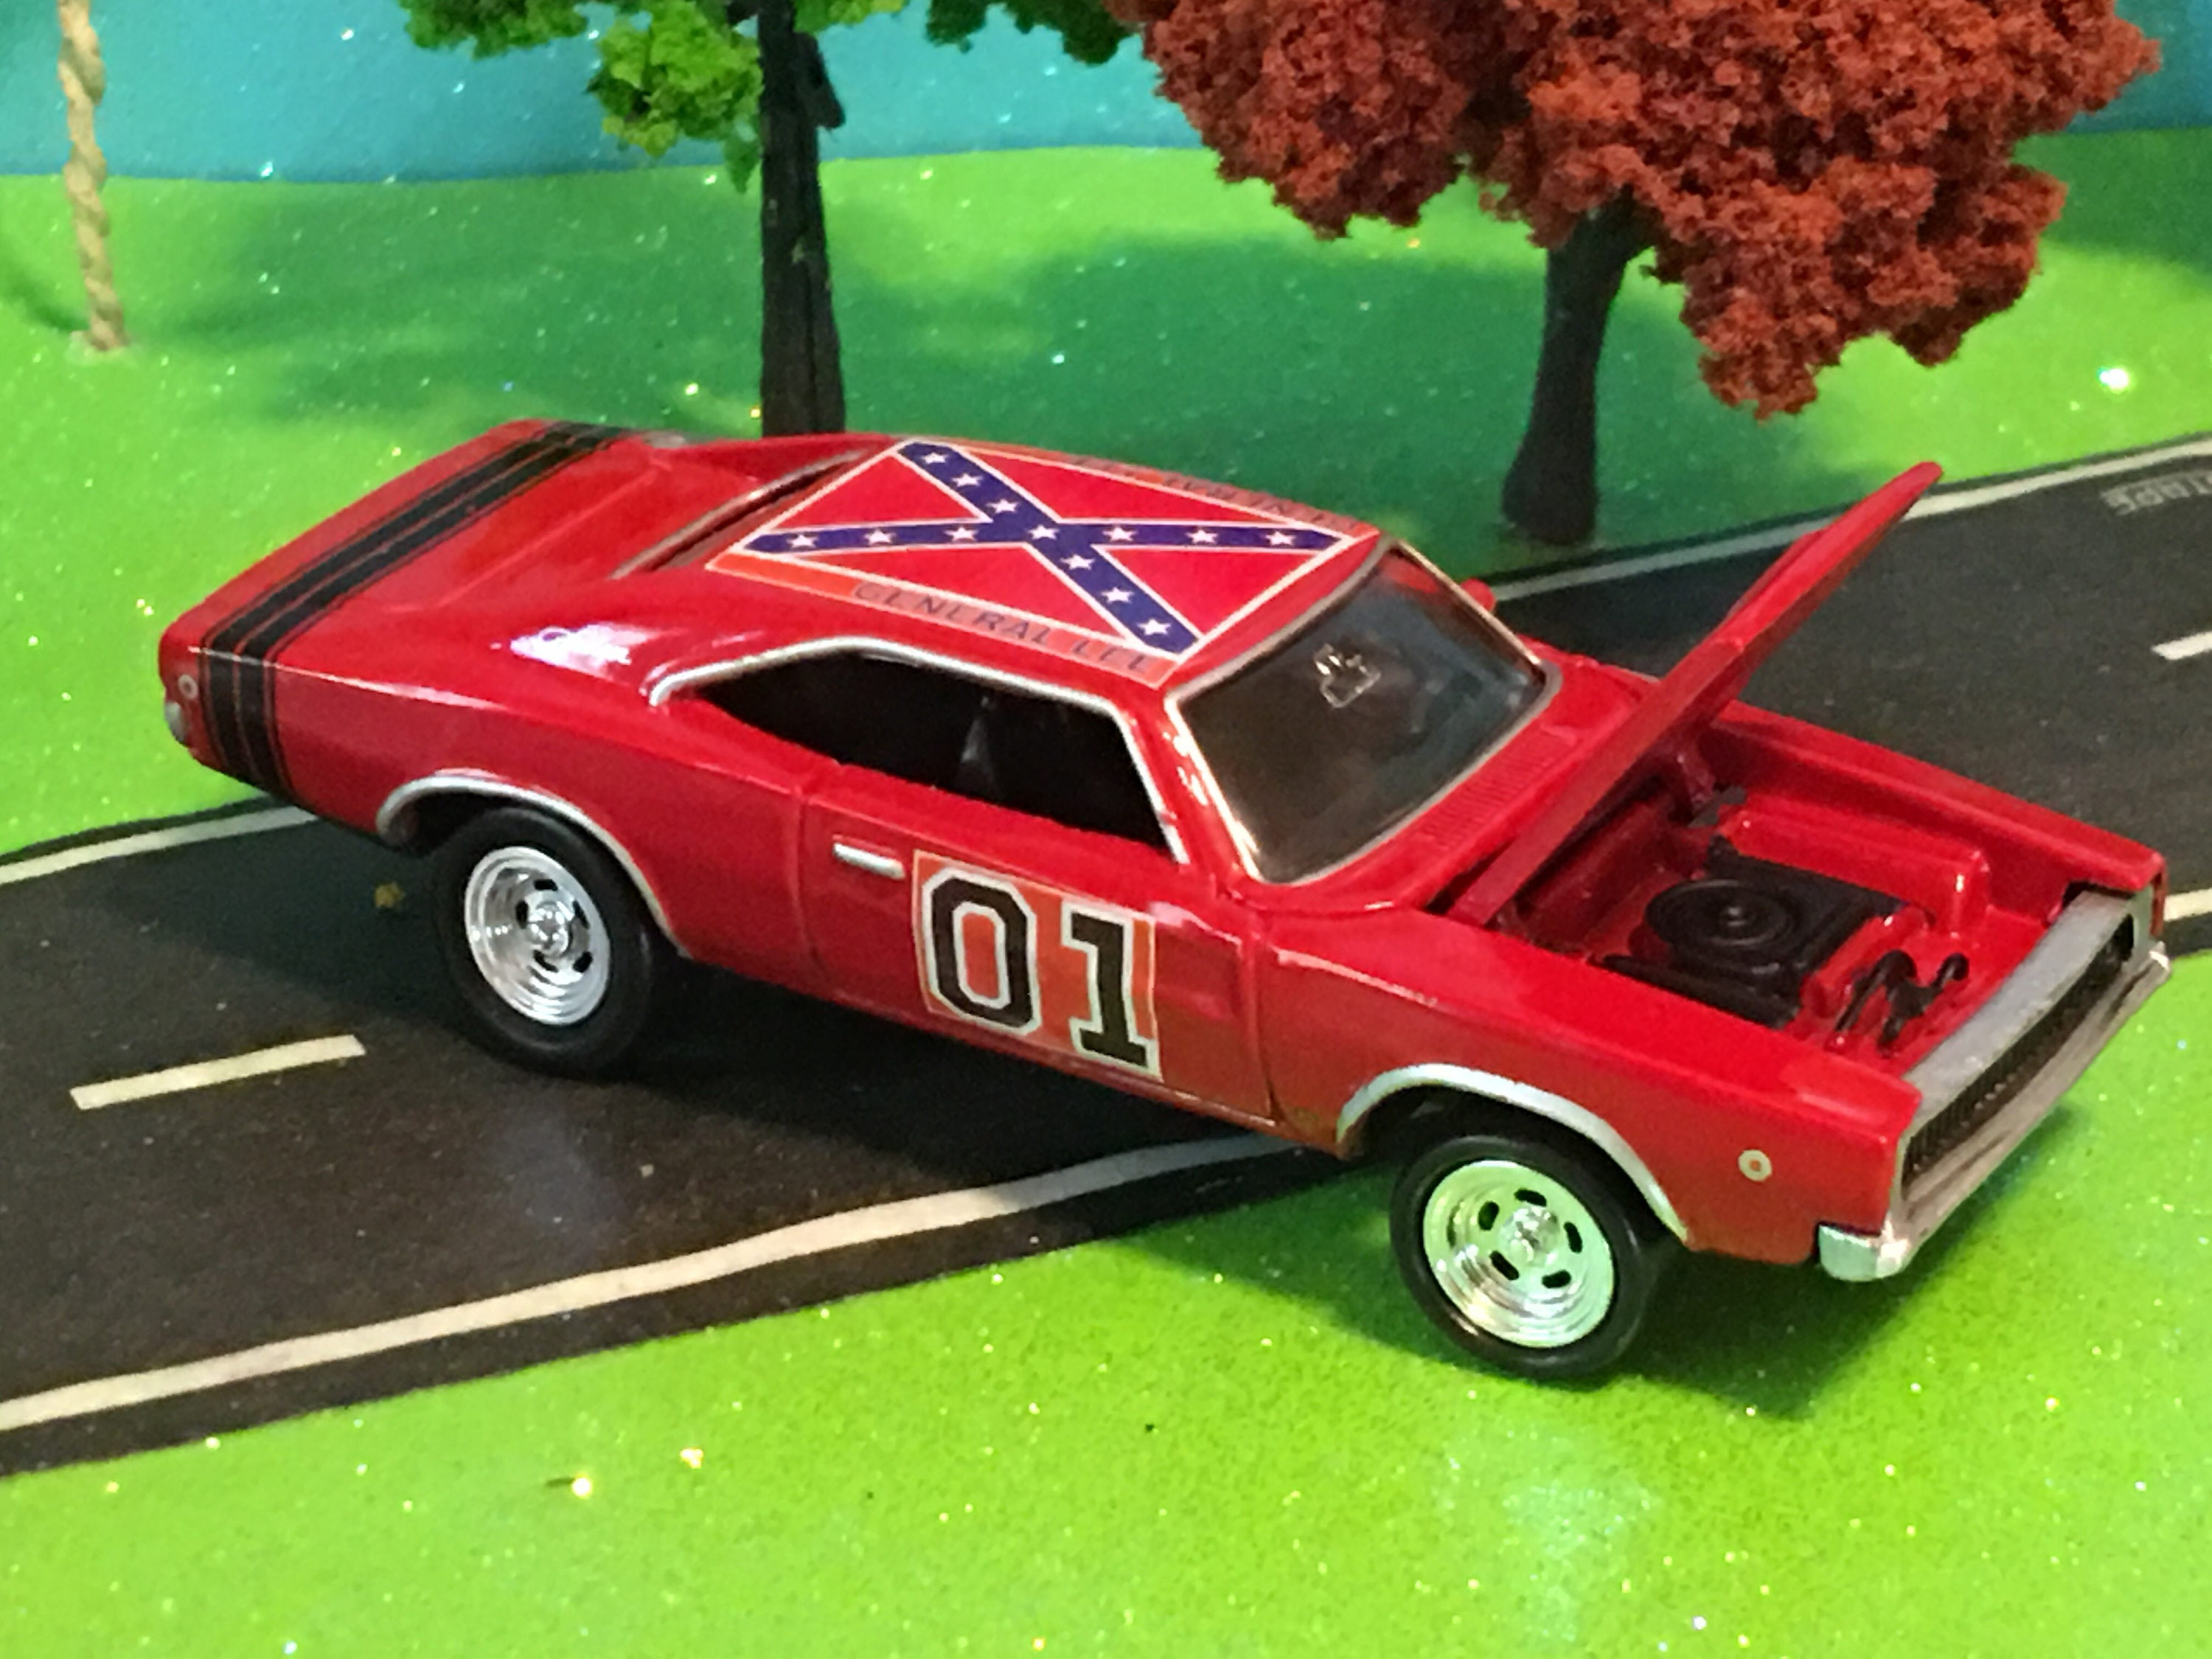 Dukes Of Hazzard Custom Car 01 General Lee 1968 Dodge Etsy Charger Image 0